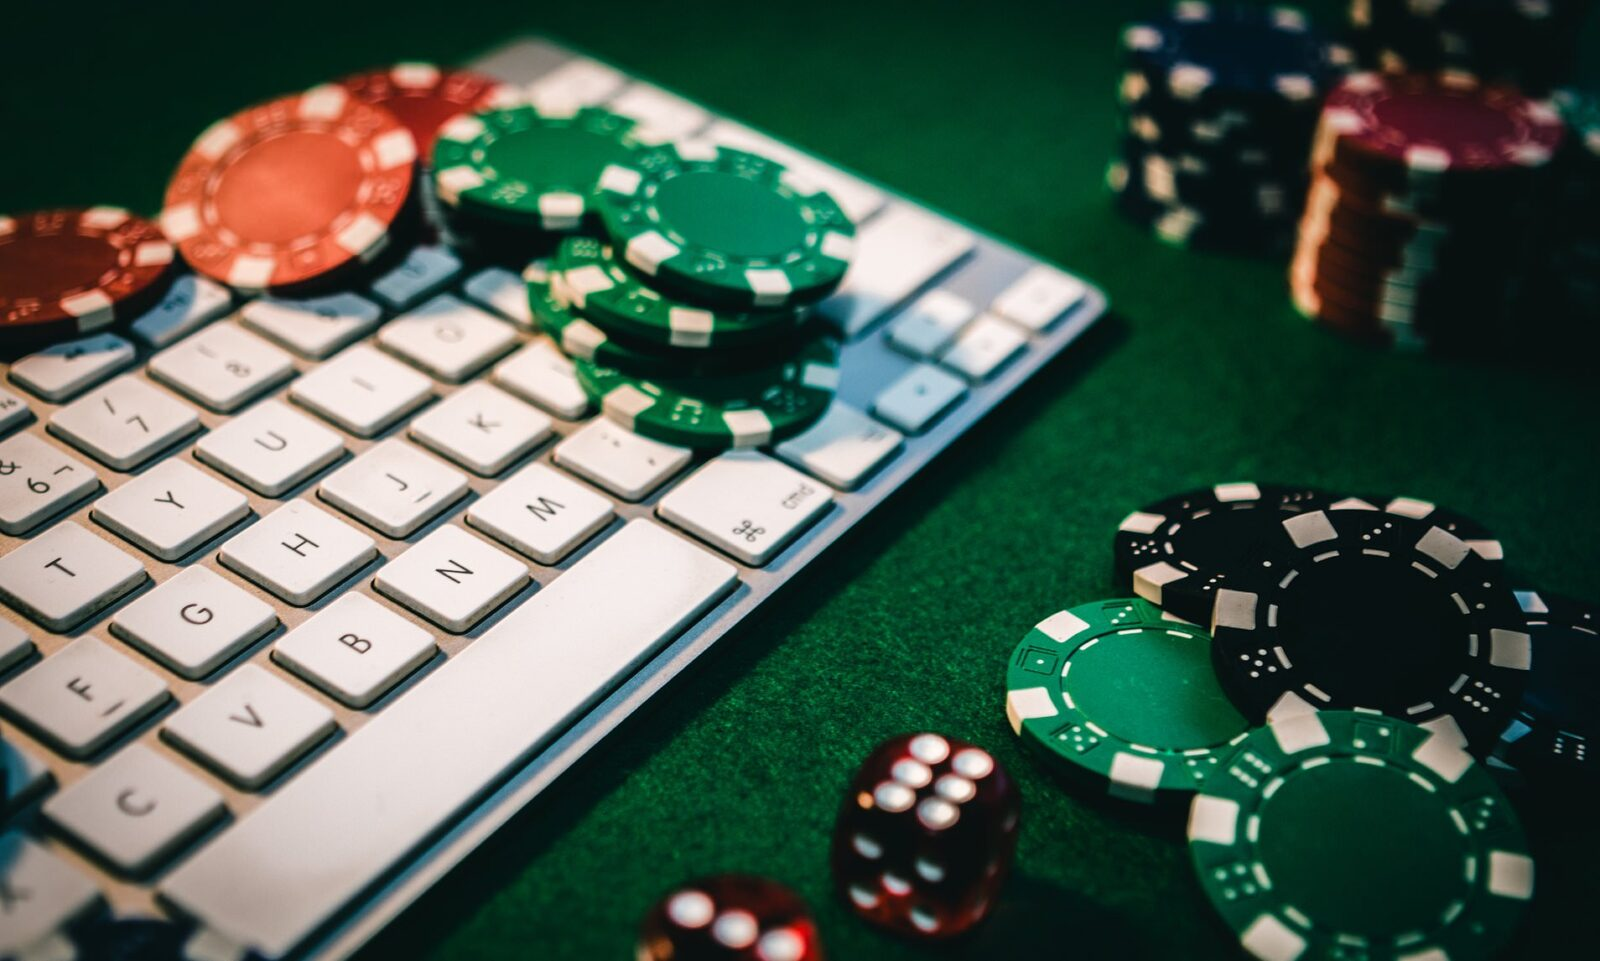 Things to Be Wary Of When Gambling Online